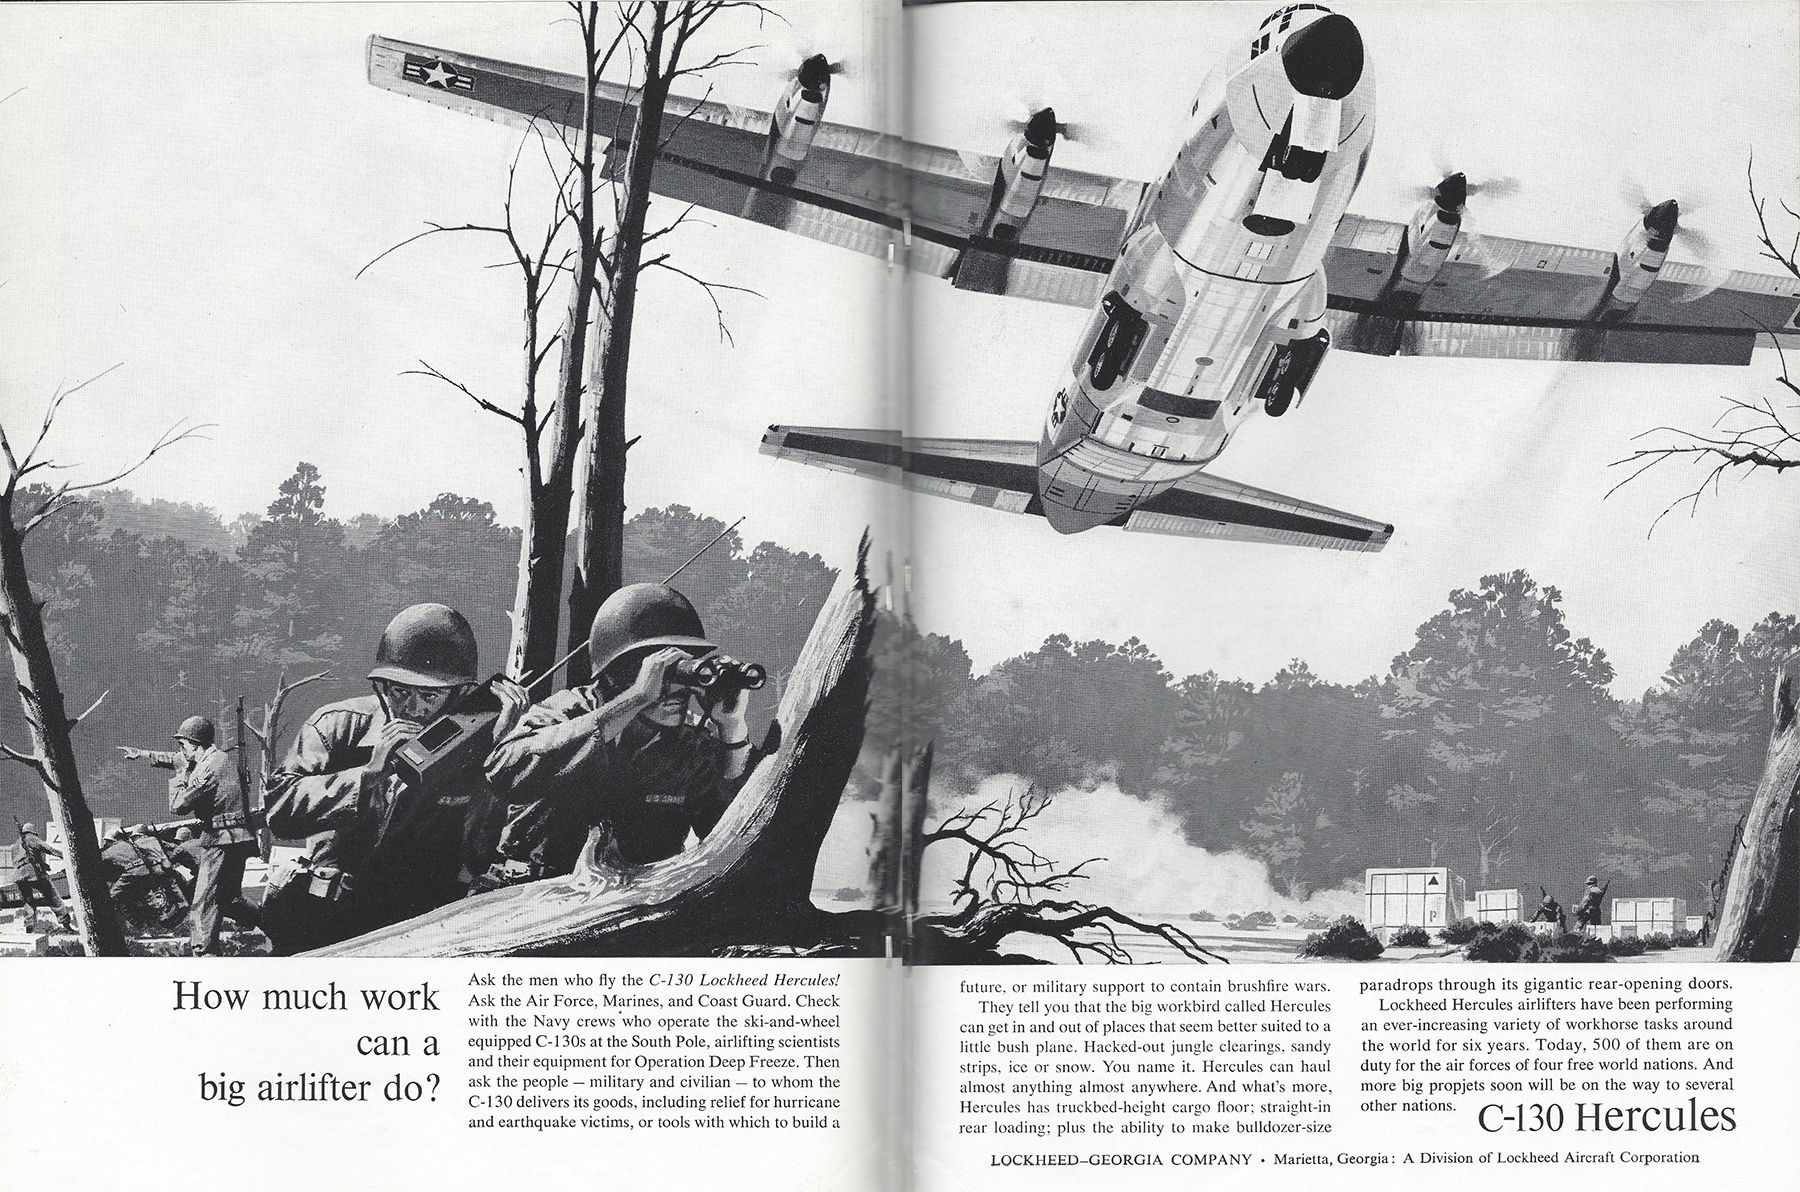 """Lockheed took out a double-page spread in Aviation Week in 1963, nine years after first flight of the C-130 Hercules, to ask: """"how much work can a big airlifter do?"""" At the time, 500 C-130s were on duty for four nations."""